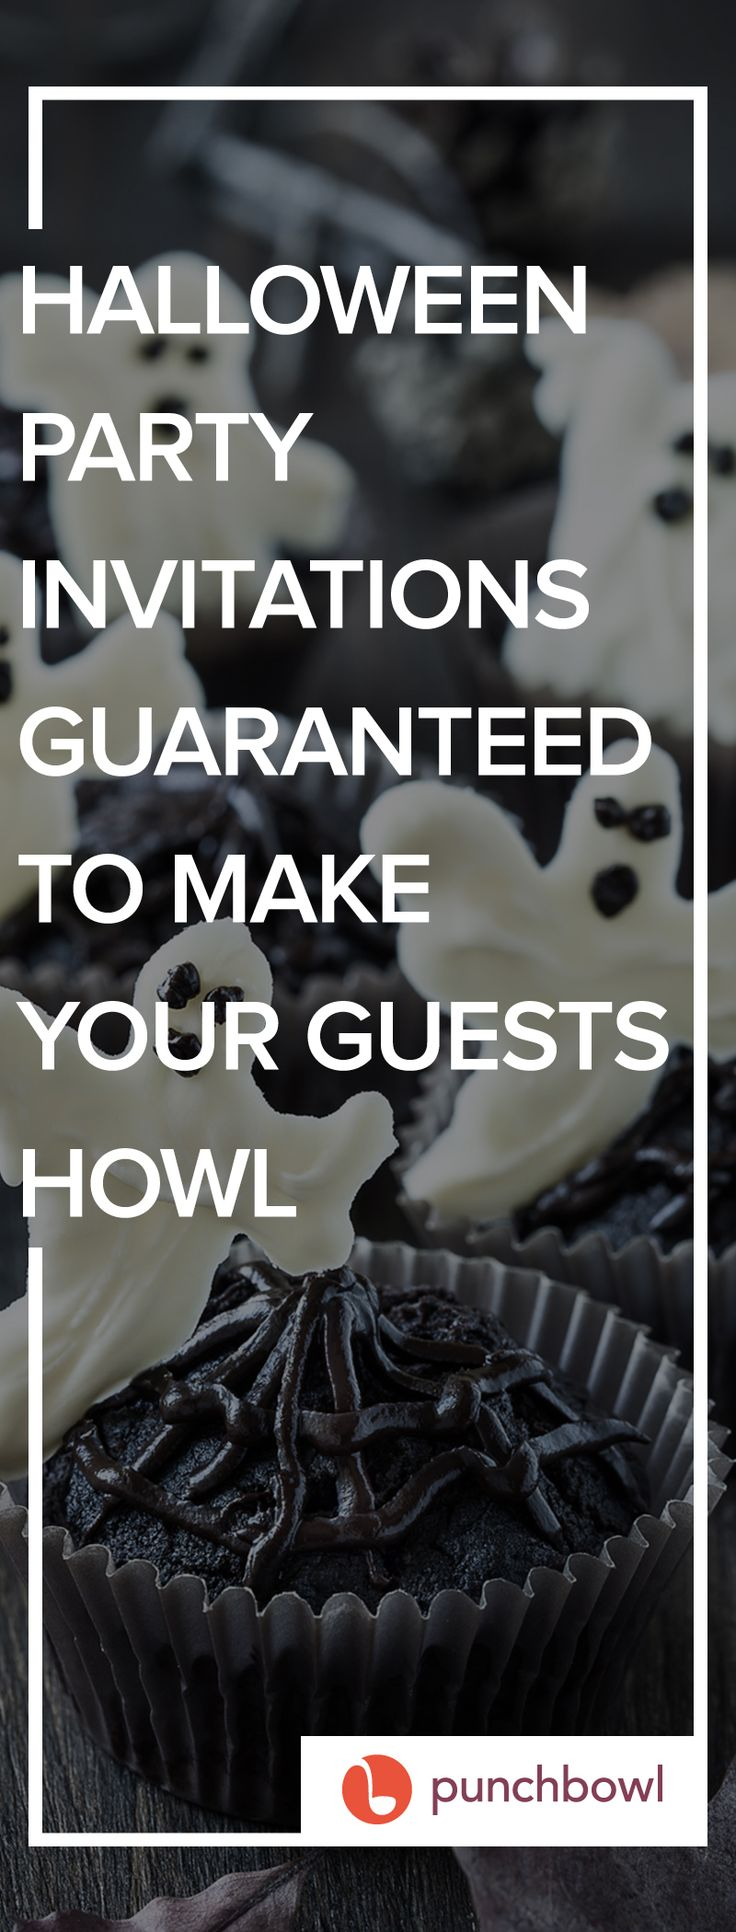 Best 20+ Online invitations ideas on Pinterest | Boarding pass ...